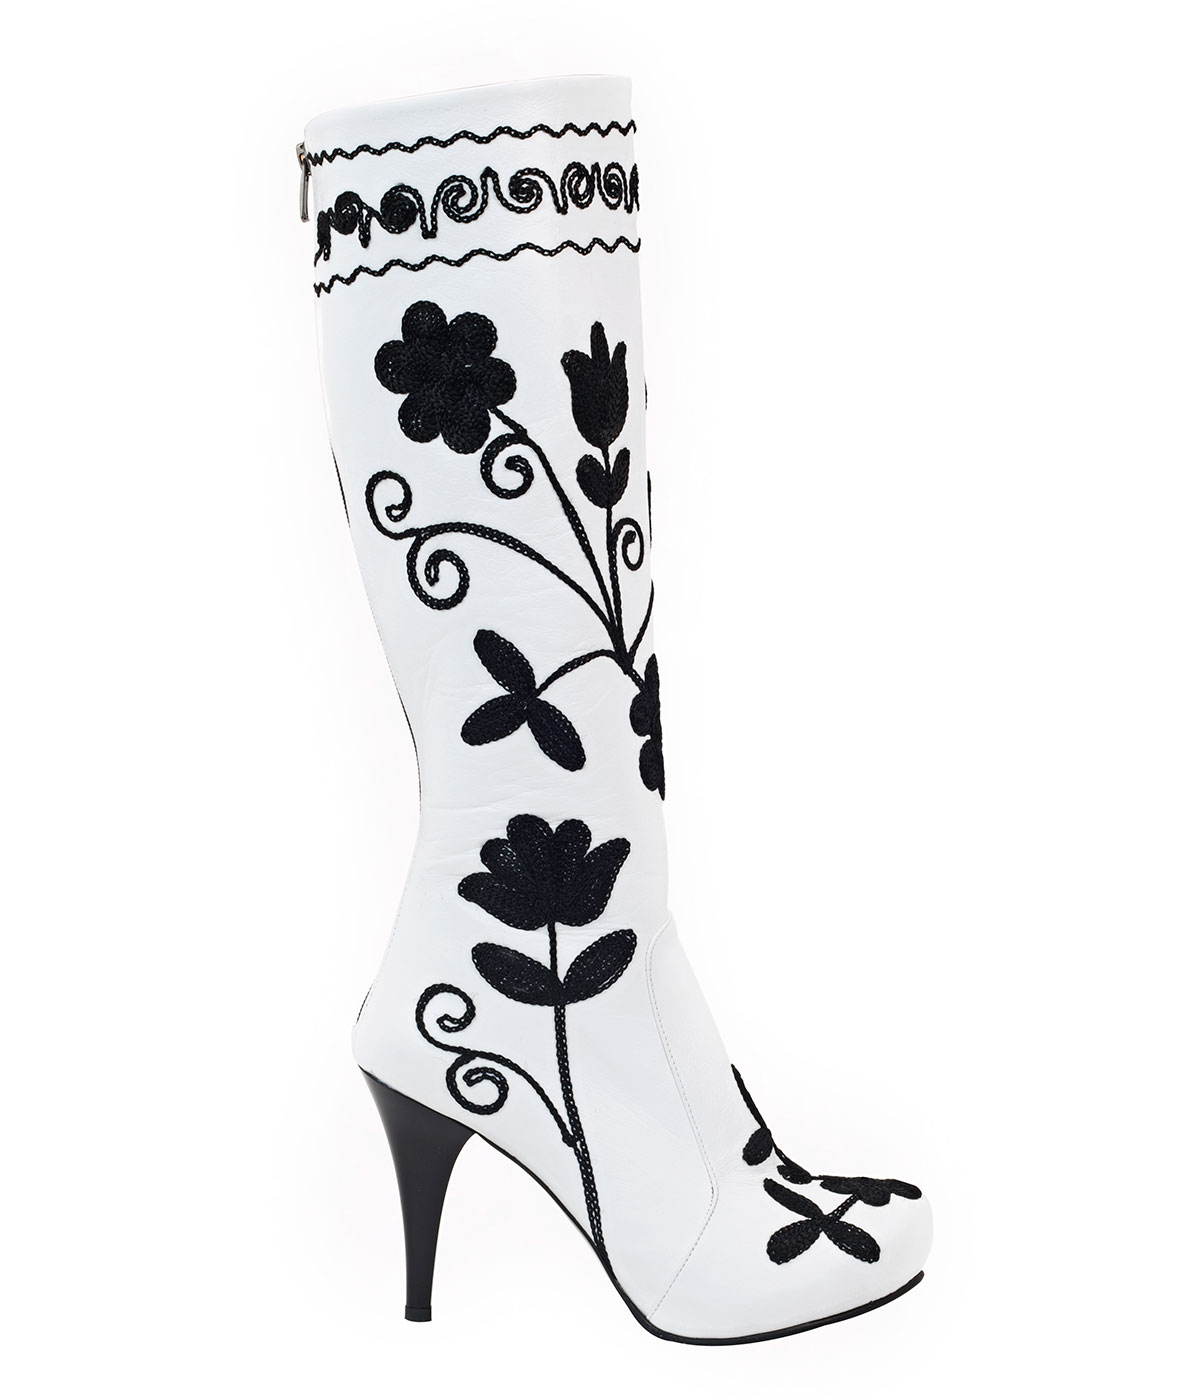 stiletto-white-calfskin-boot-a